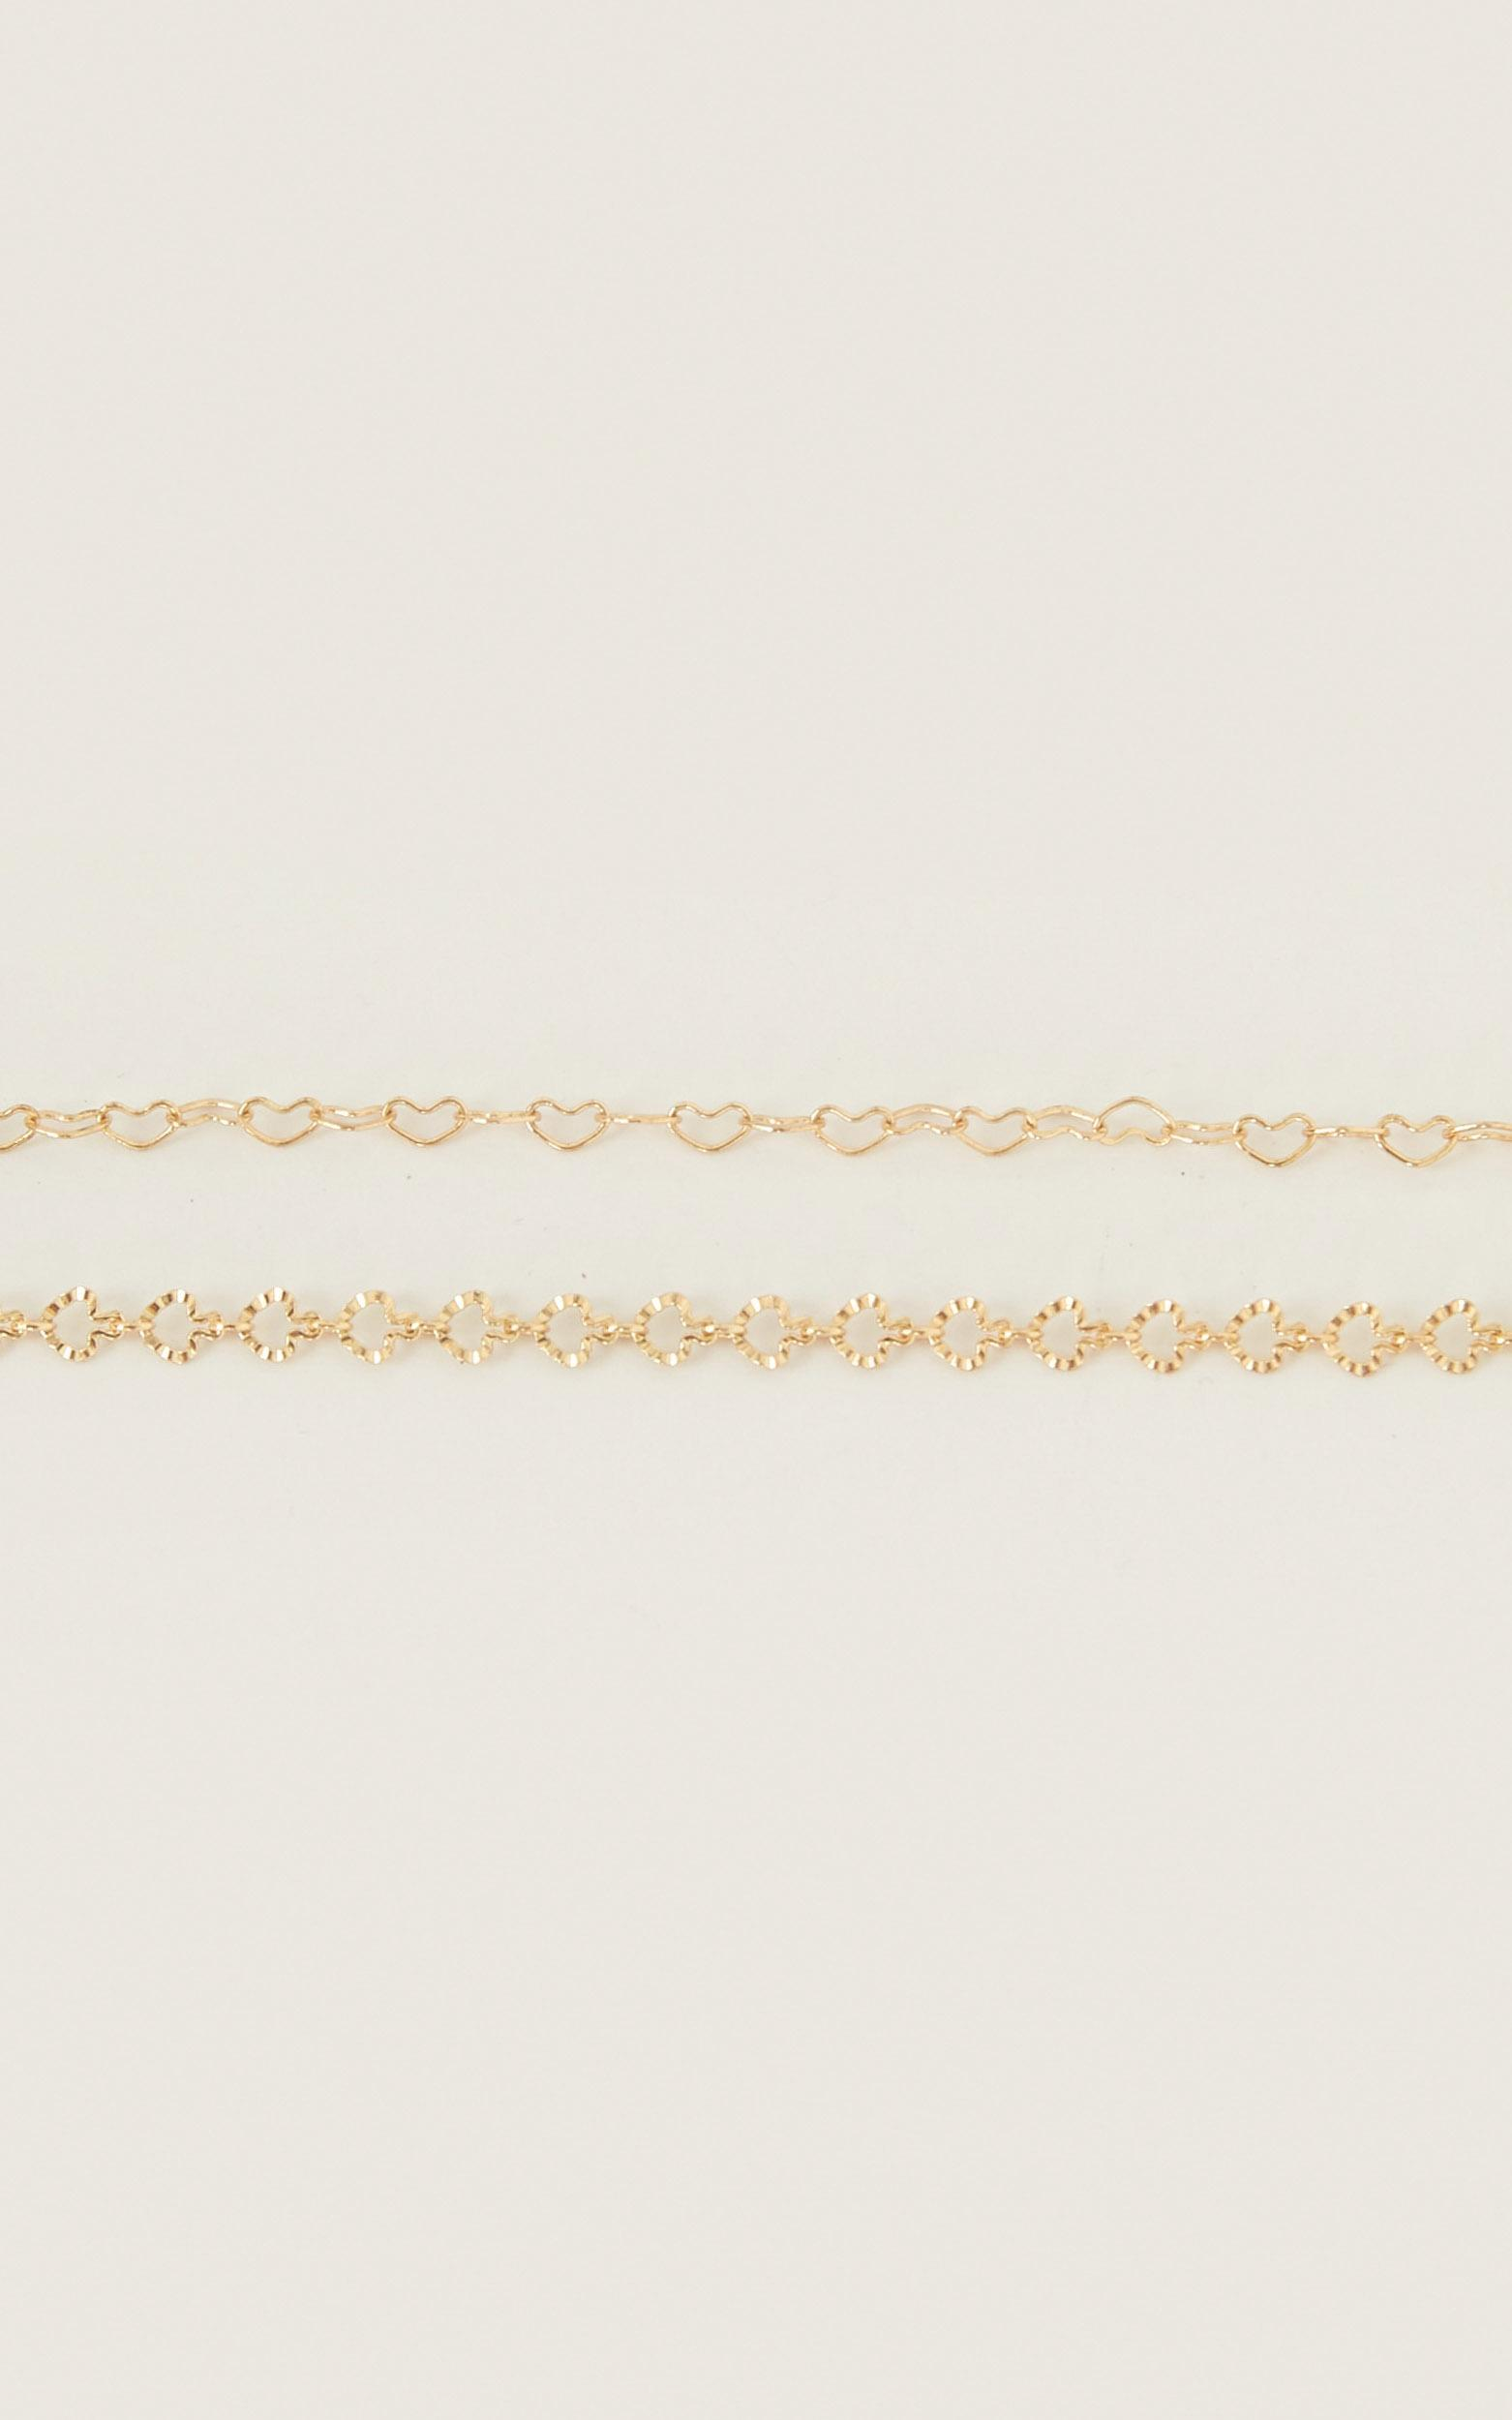 Steer Clear Anklet Set In Gold, , hi-res image number null